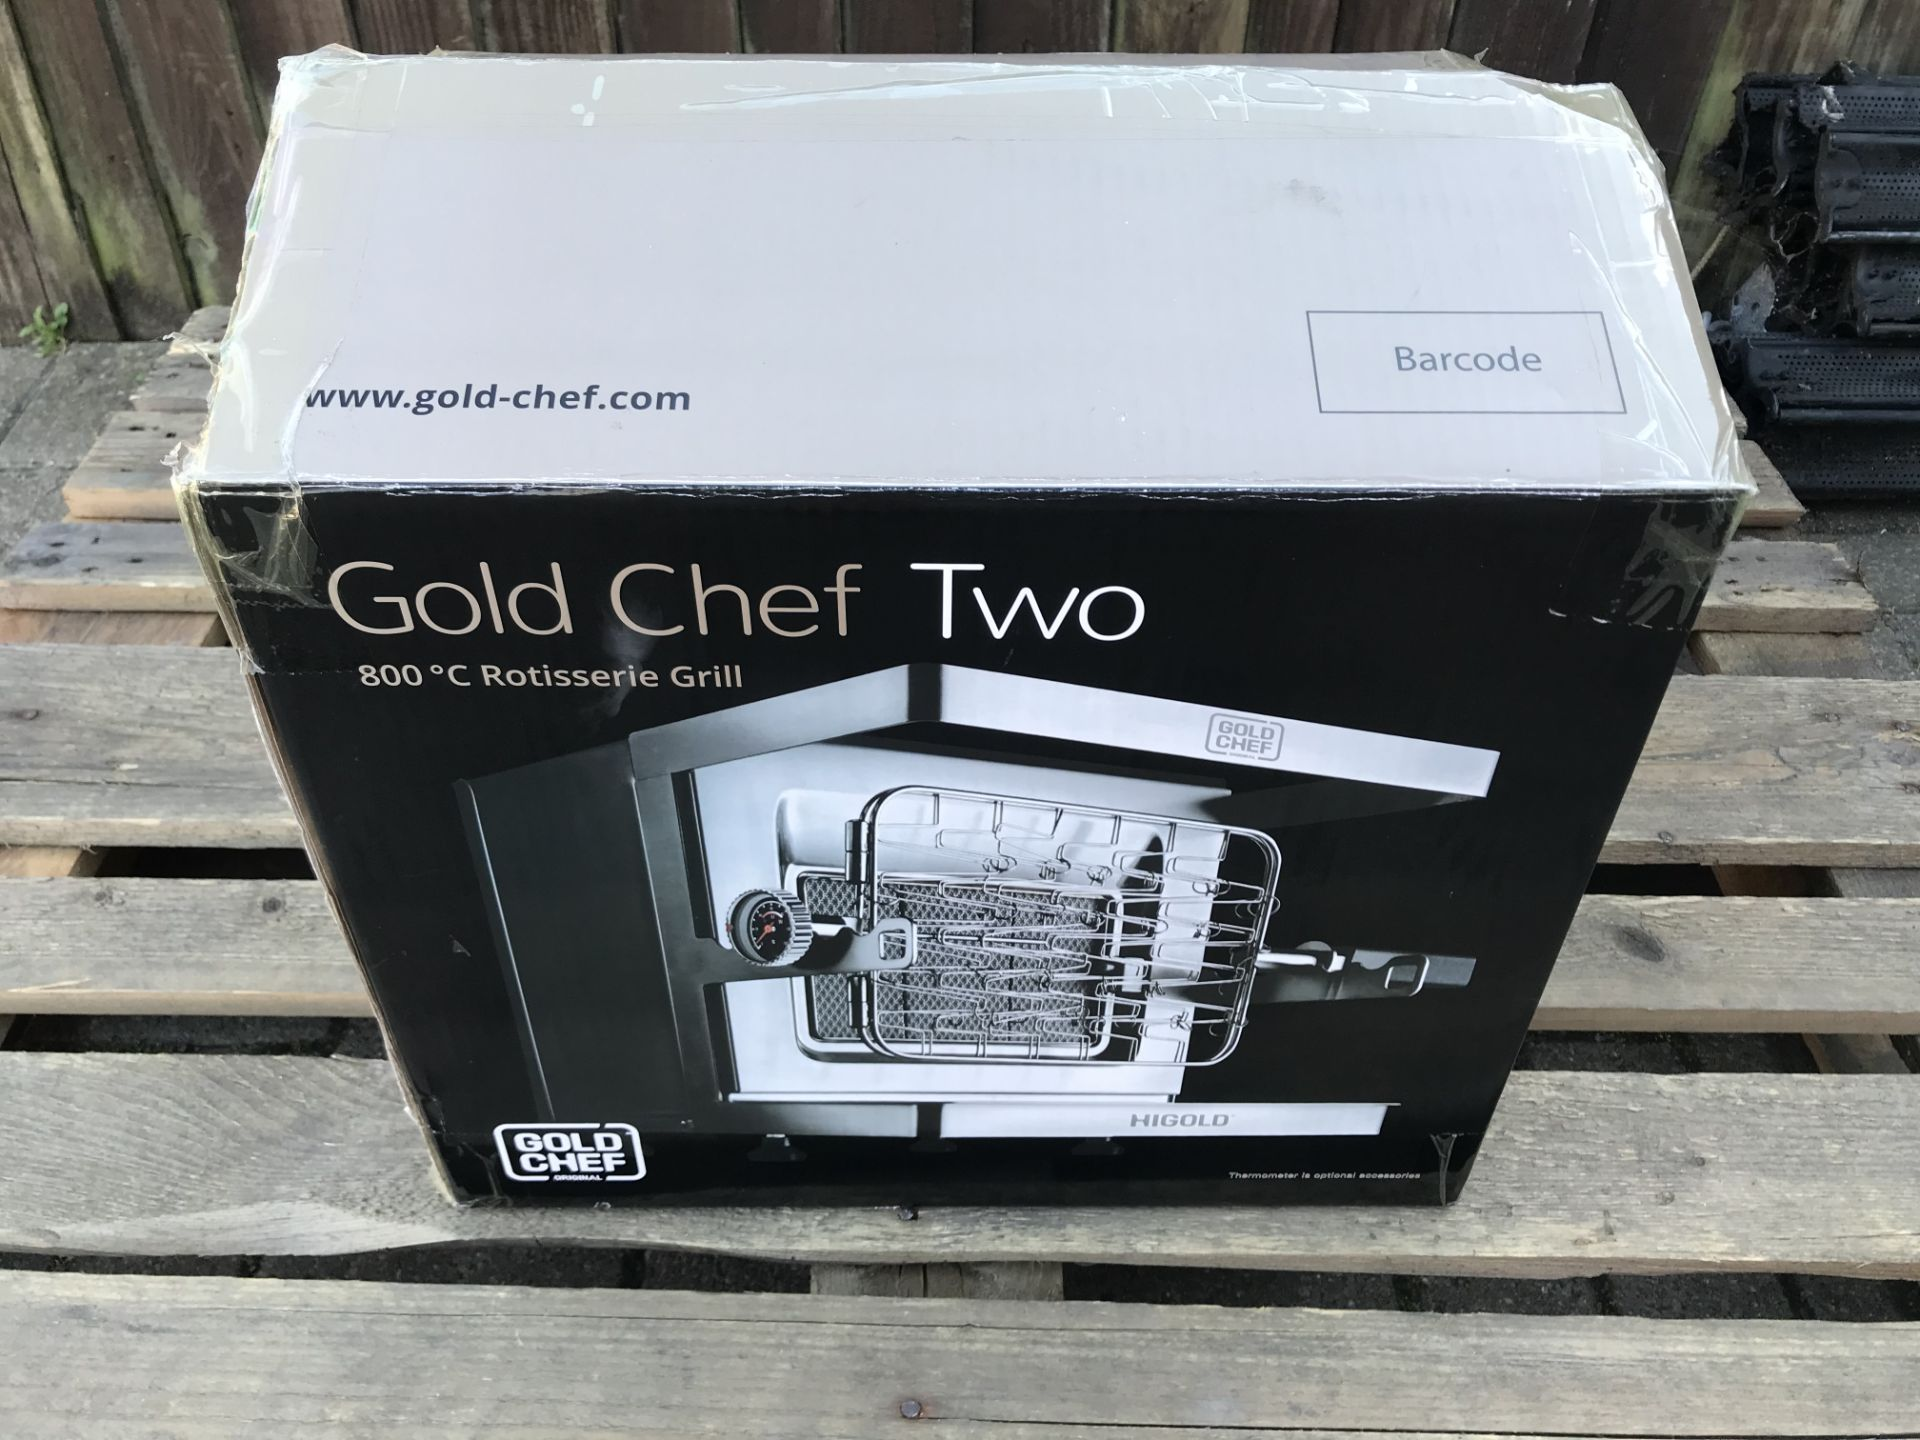 Lot 19 - GOLD CHEF TWO 800C ROTISSERIE GRILL